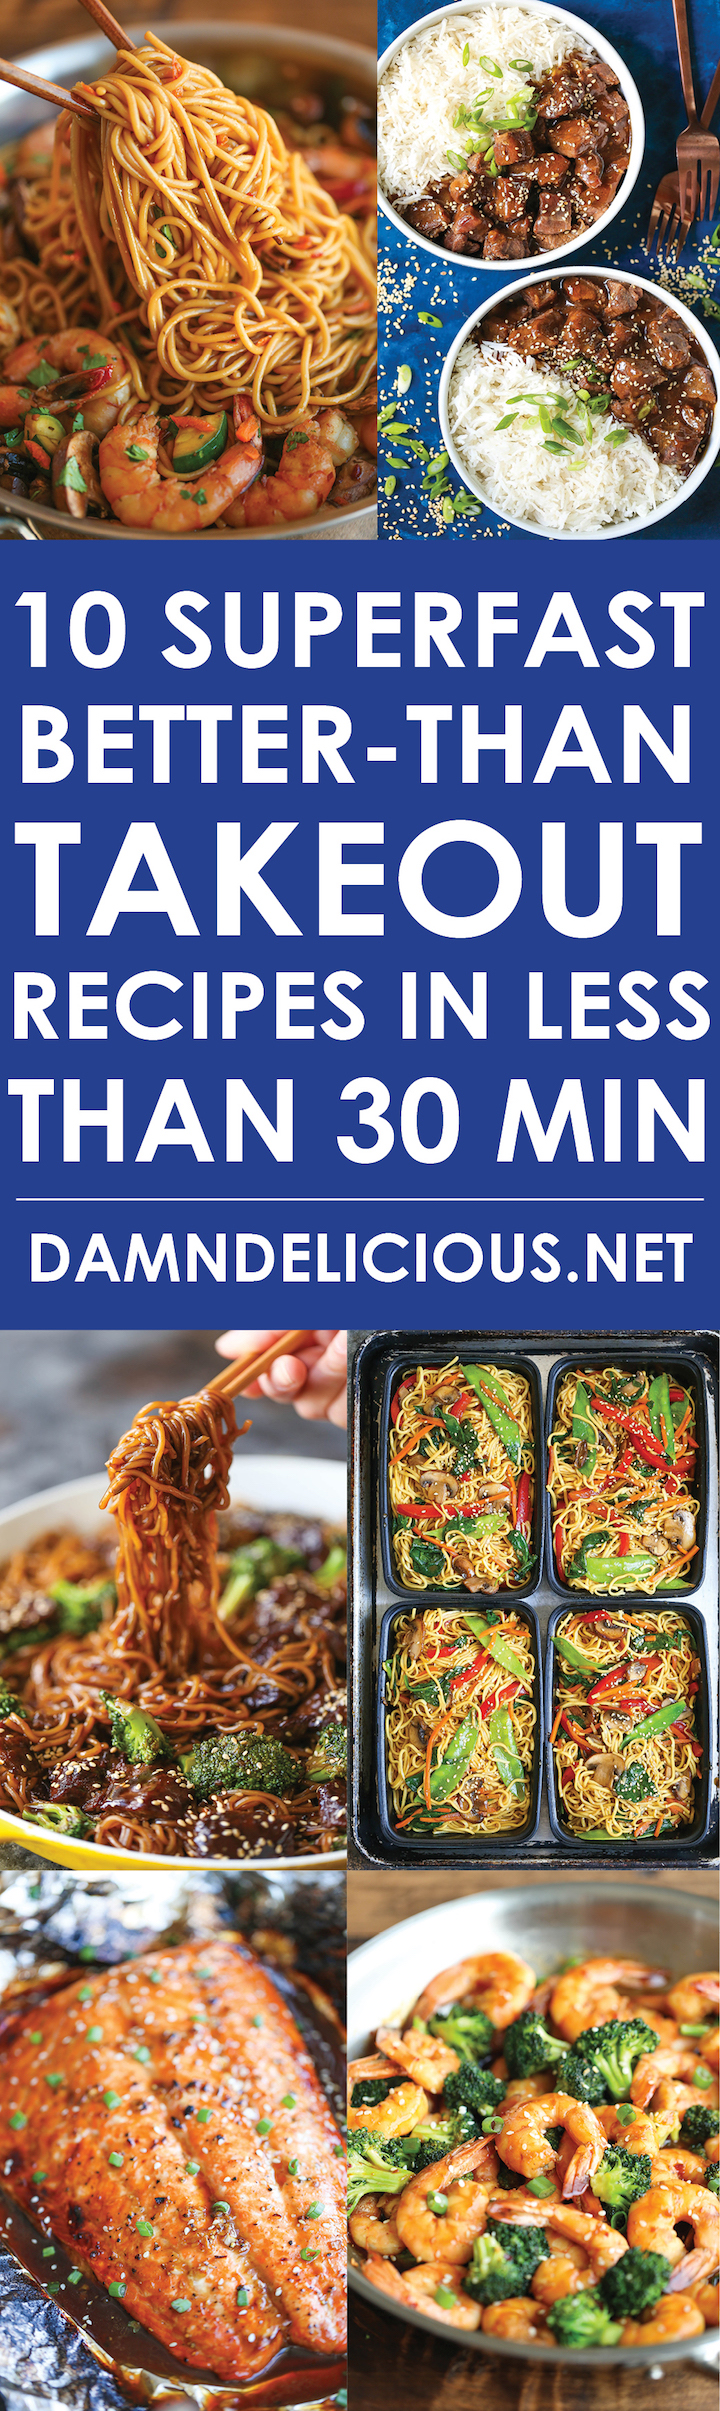 10 Superfast Better-Than Takeout Recipes in Less than 30 Minutes - Skip the takeout, delivery, and drive-thru! Nothing beats homemade when it's this quick!